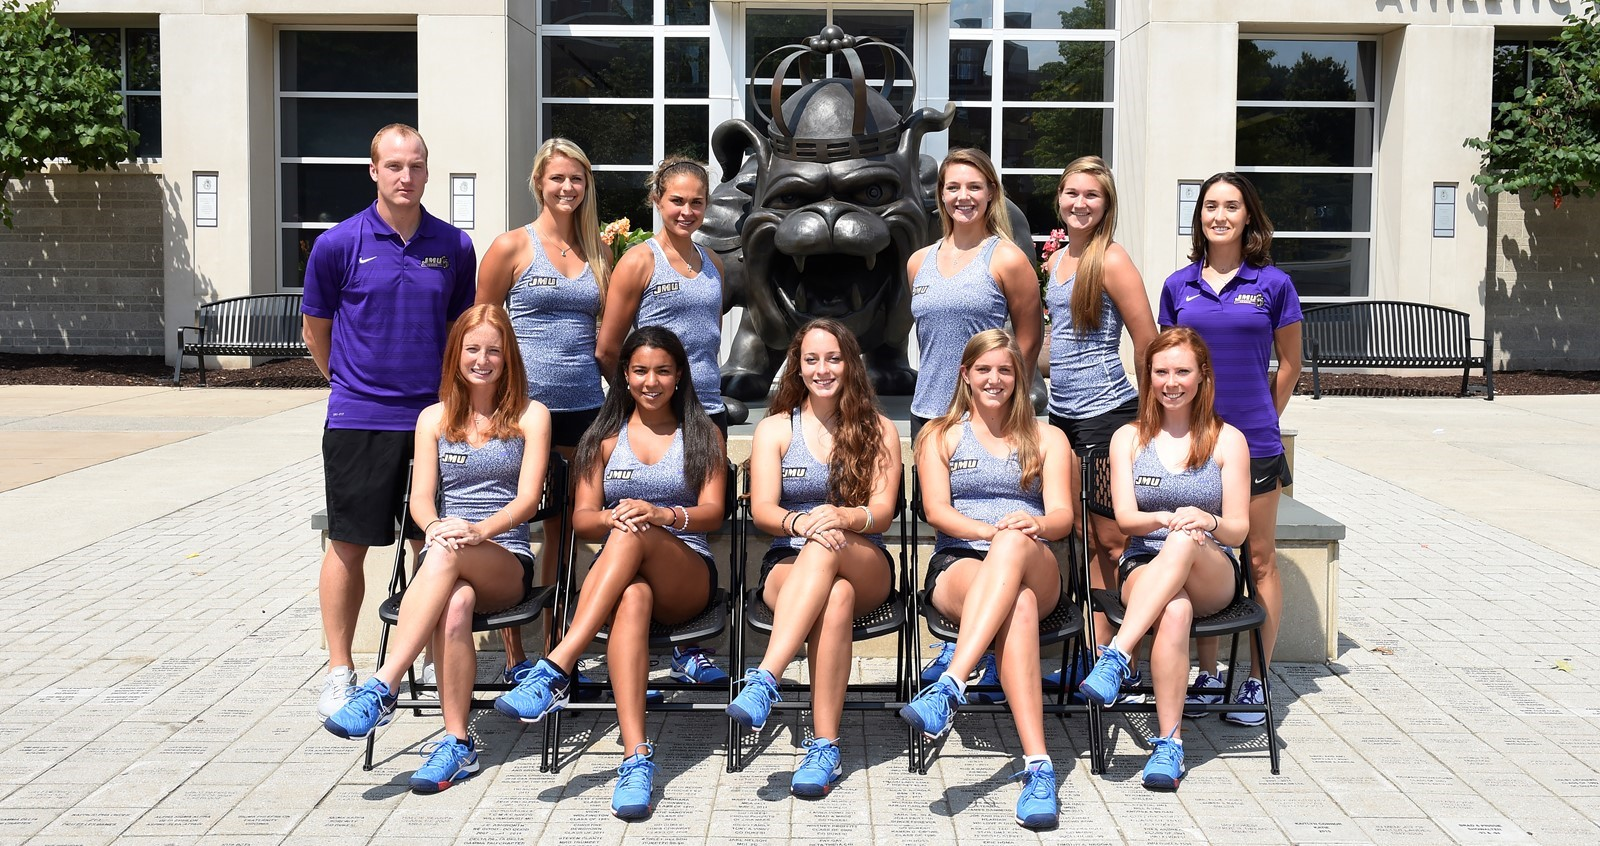 Women's Tennis, Student-Athlete Services: JMU Earns ITA All-Academic Honor, Three Tabbed Scholar-Athletes